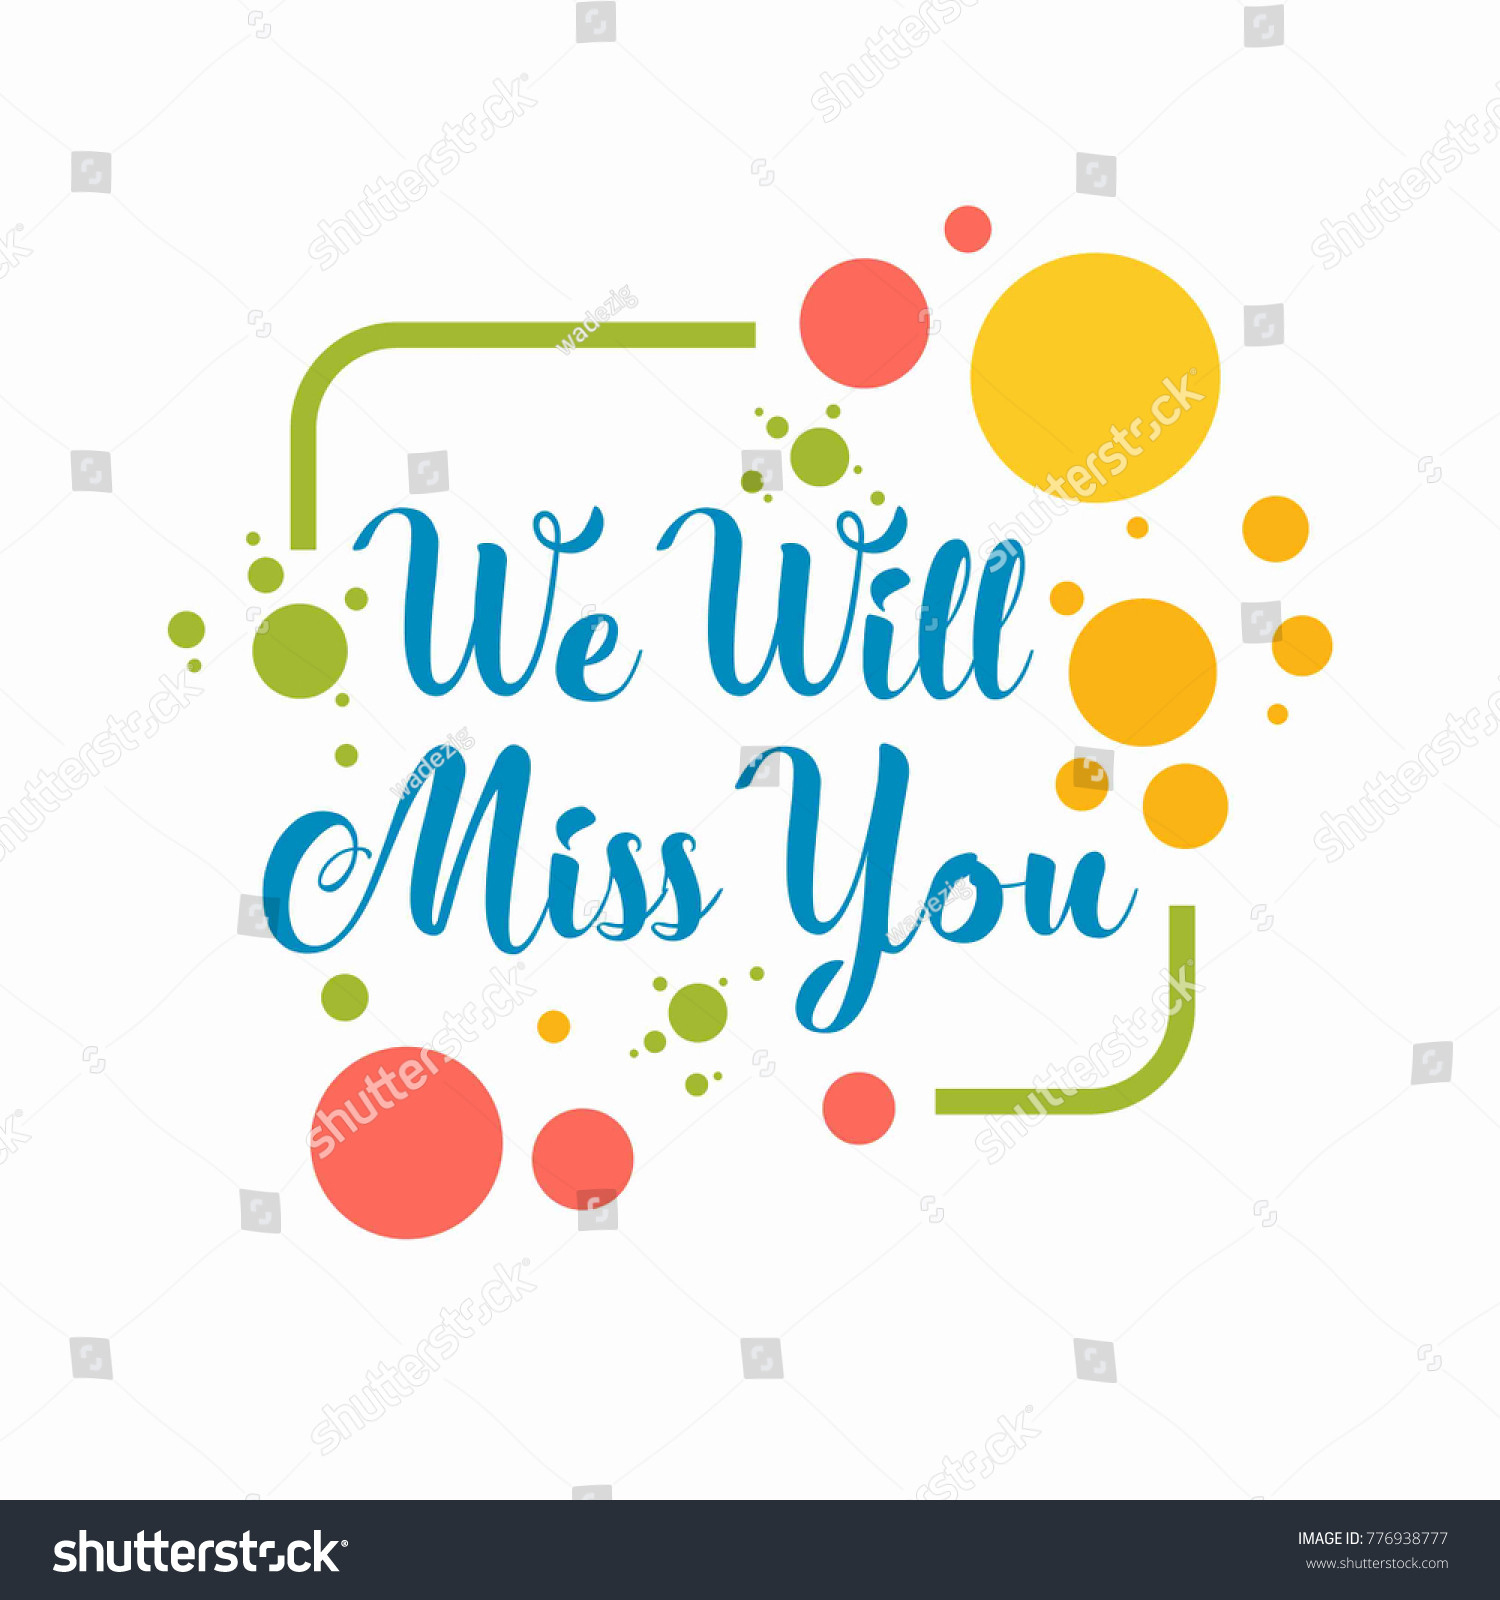 Free Farewell Card Business Charts Family Chore Chart Yourweek In We - Free Printable We Will Miss You Greeting Cards